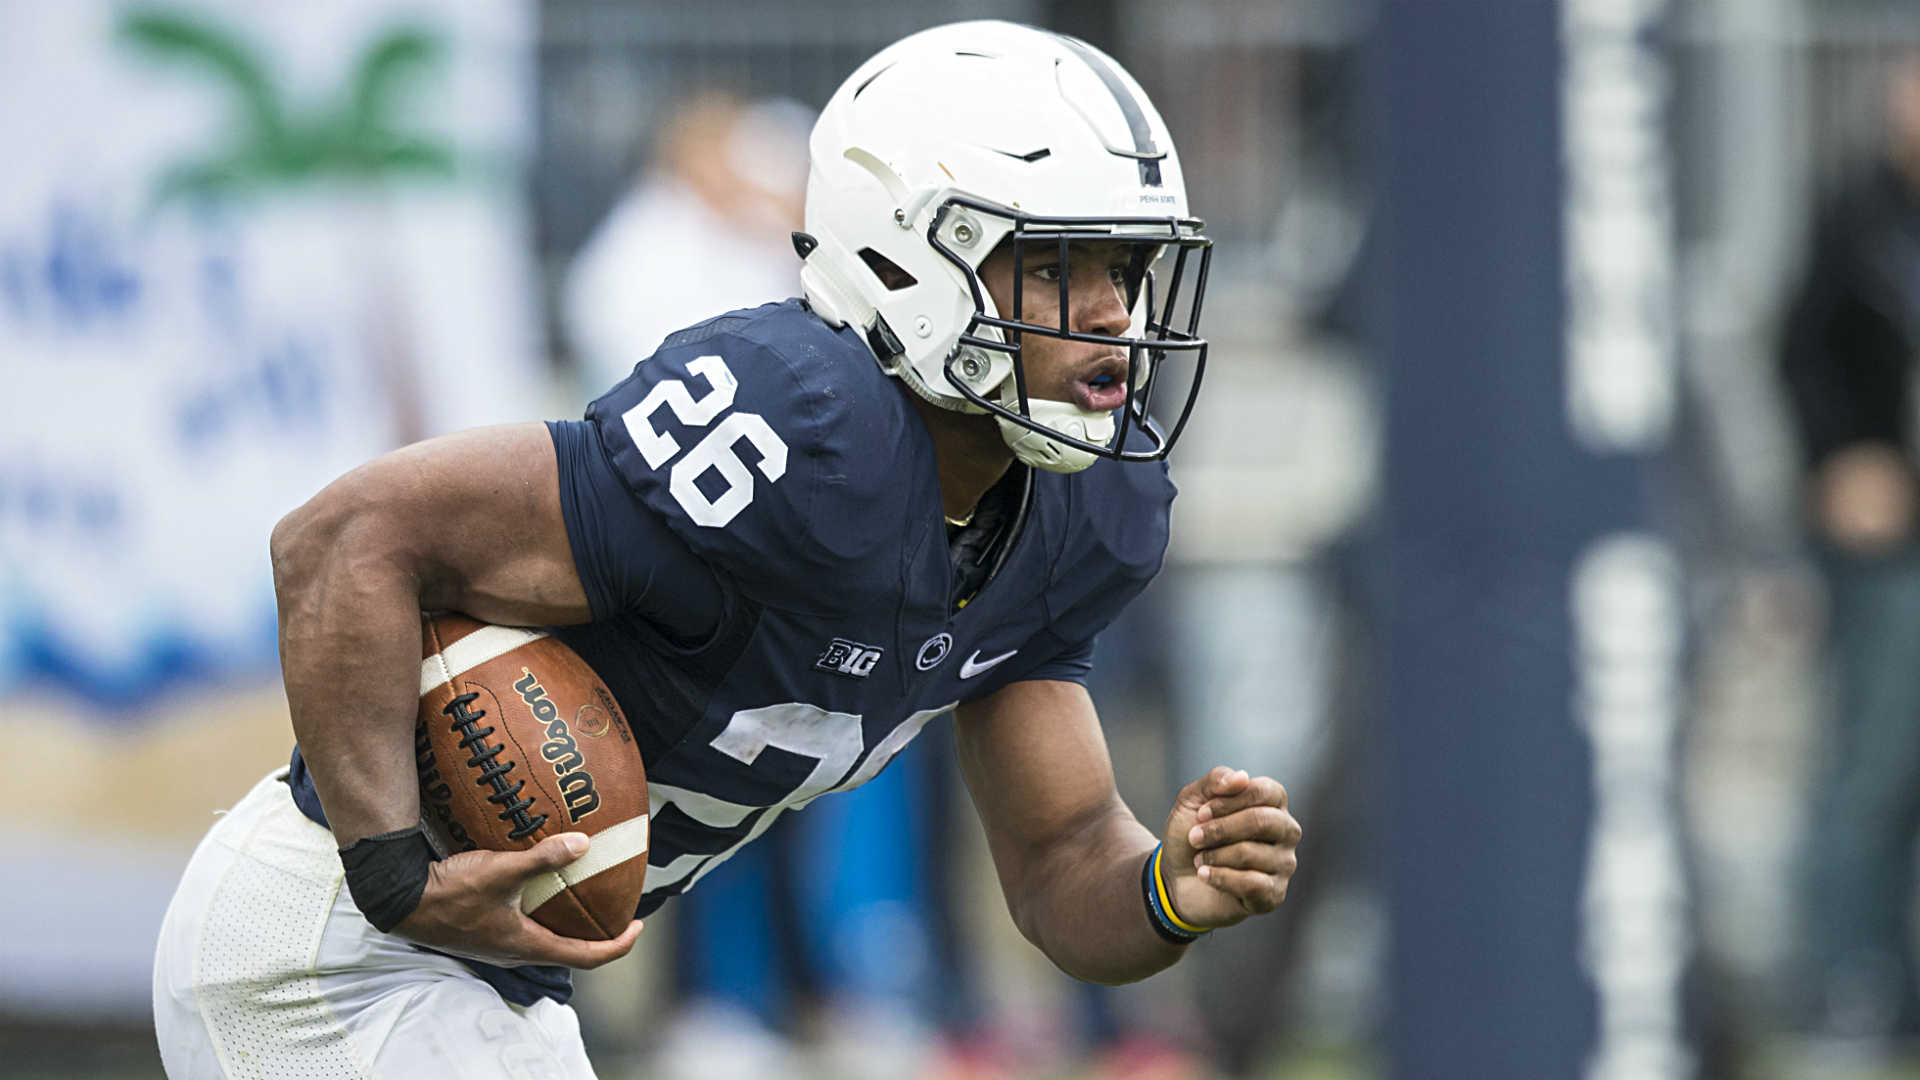 Saquon-barkley-081818-getty-ftrjpg_44m12hzd3k9h1ngzp4ce9bj8d